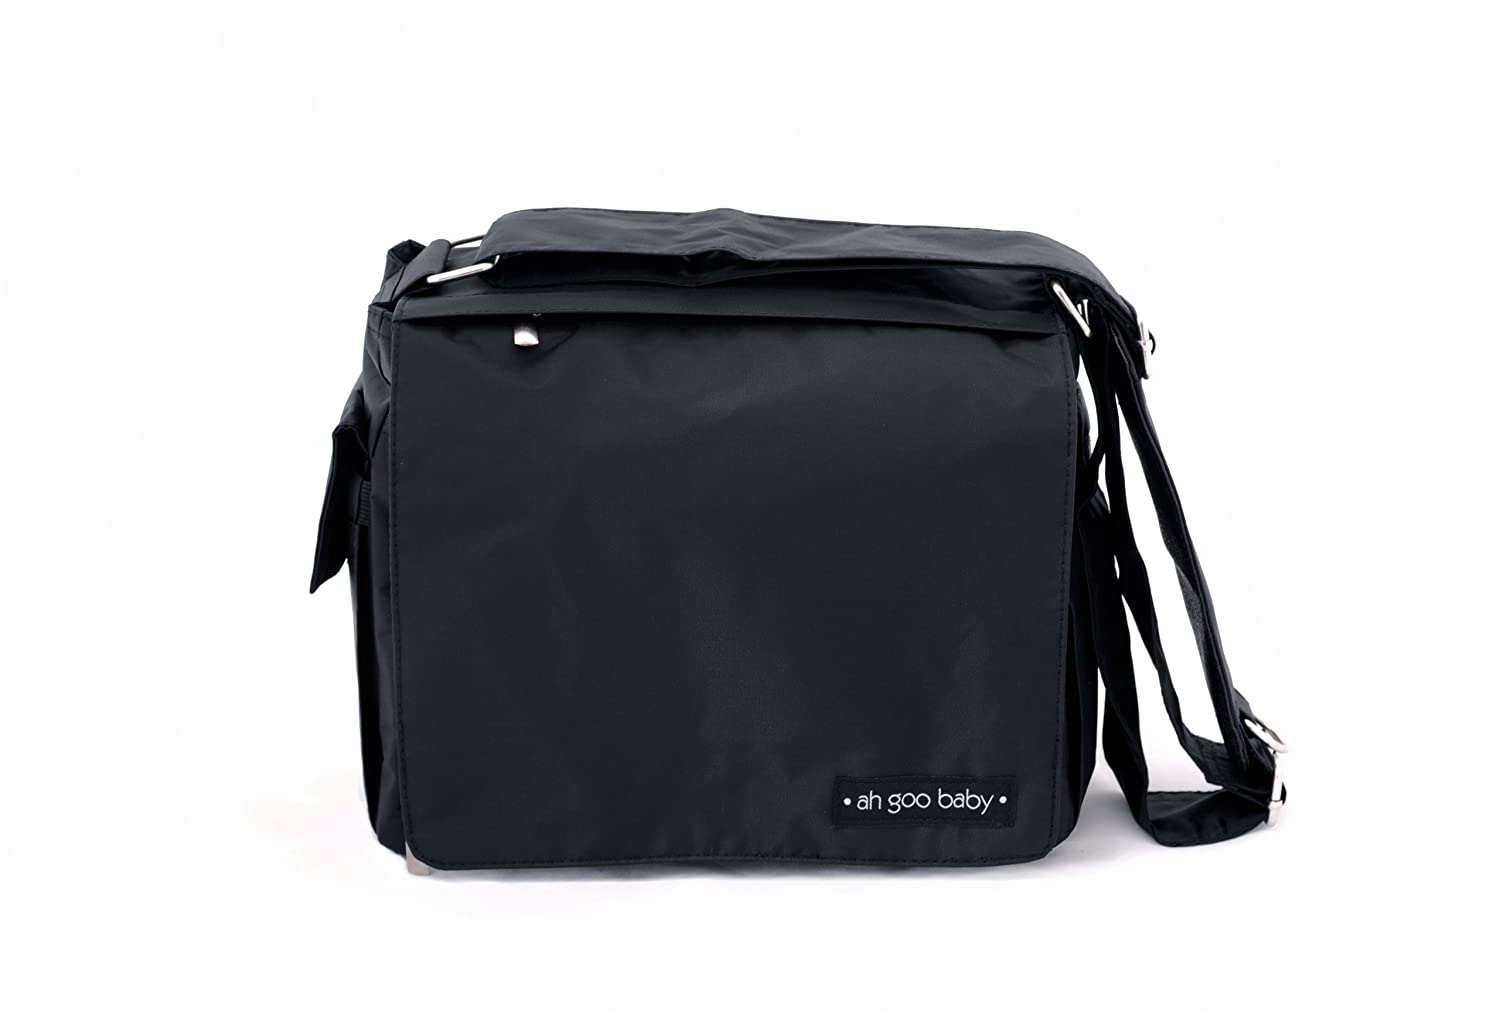 Amazon.com : El Grab-and-go bolsa de pañales, Medianoche : Baby